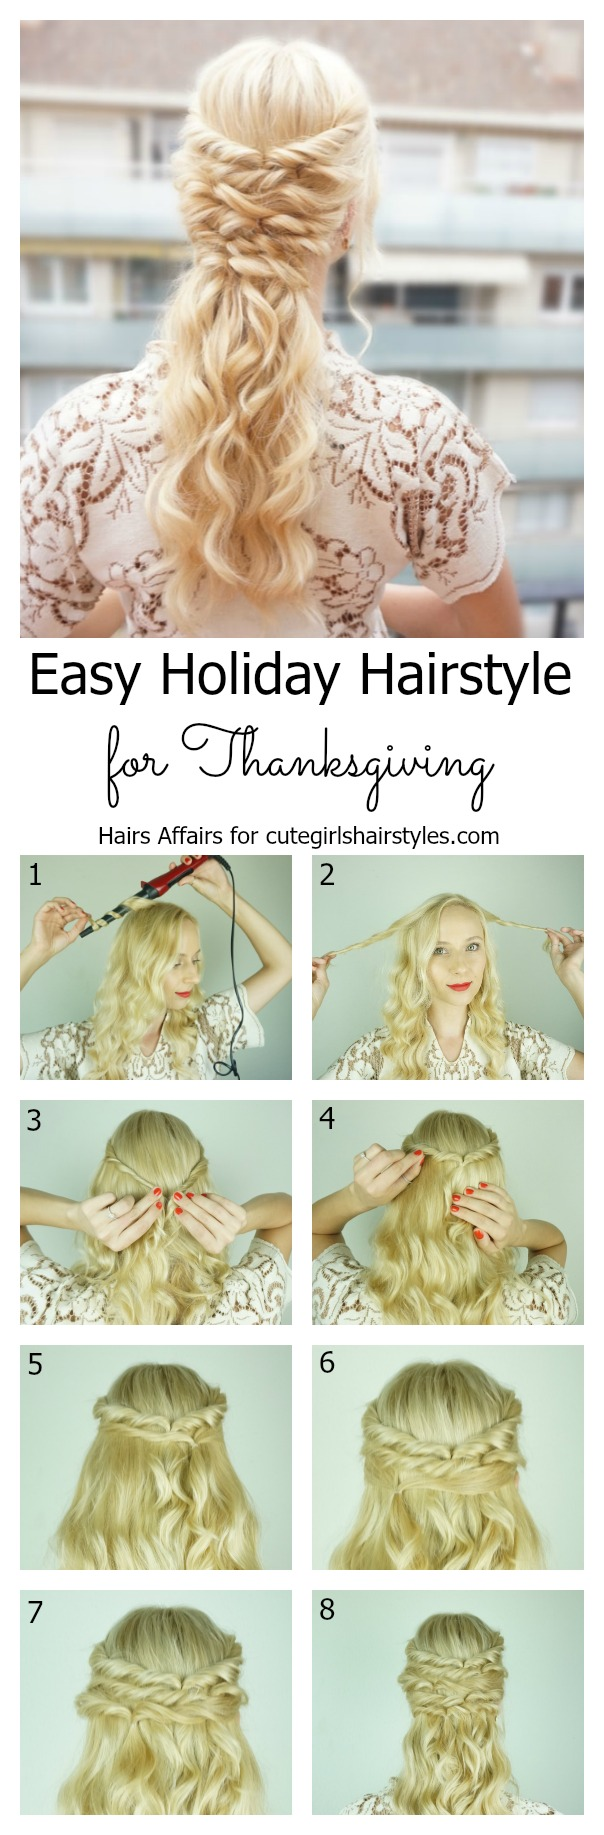 Holiday Hairstyle | CGH Lifestyle